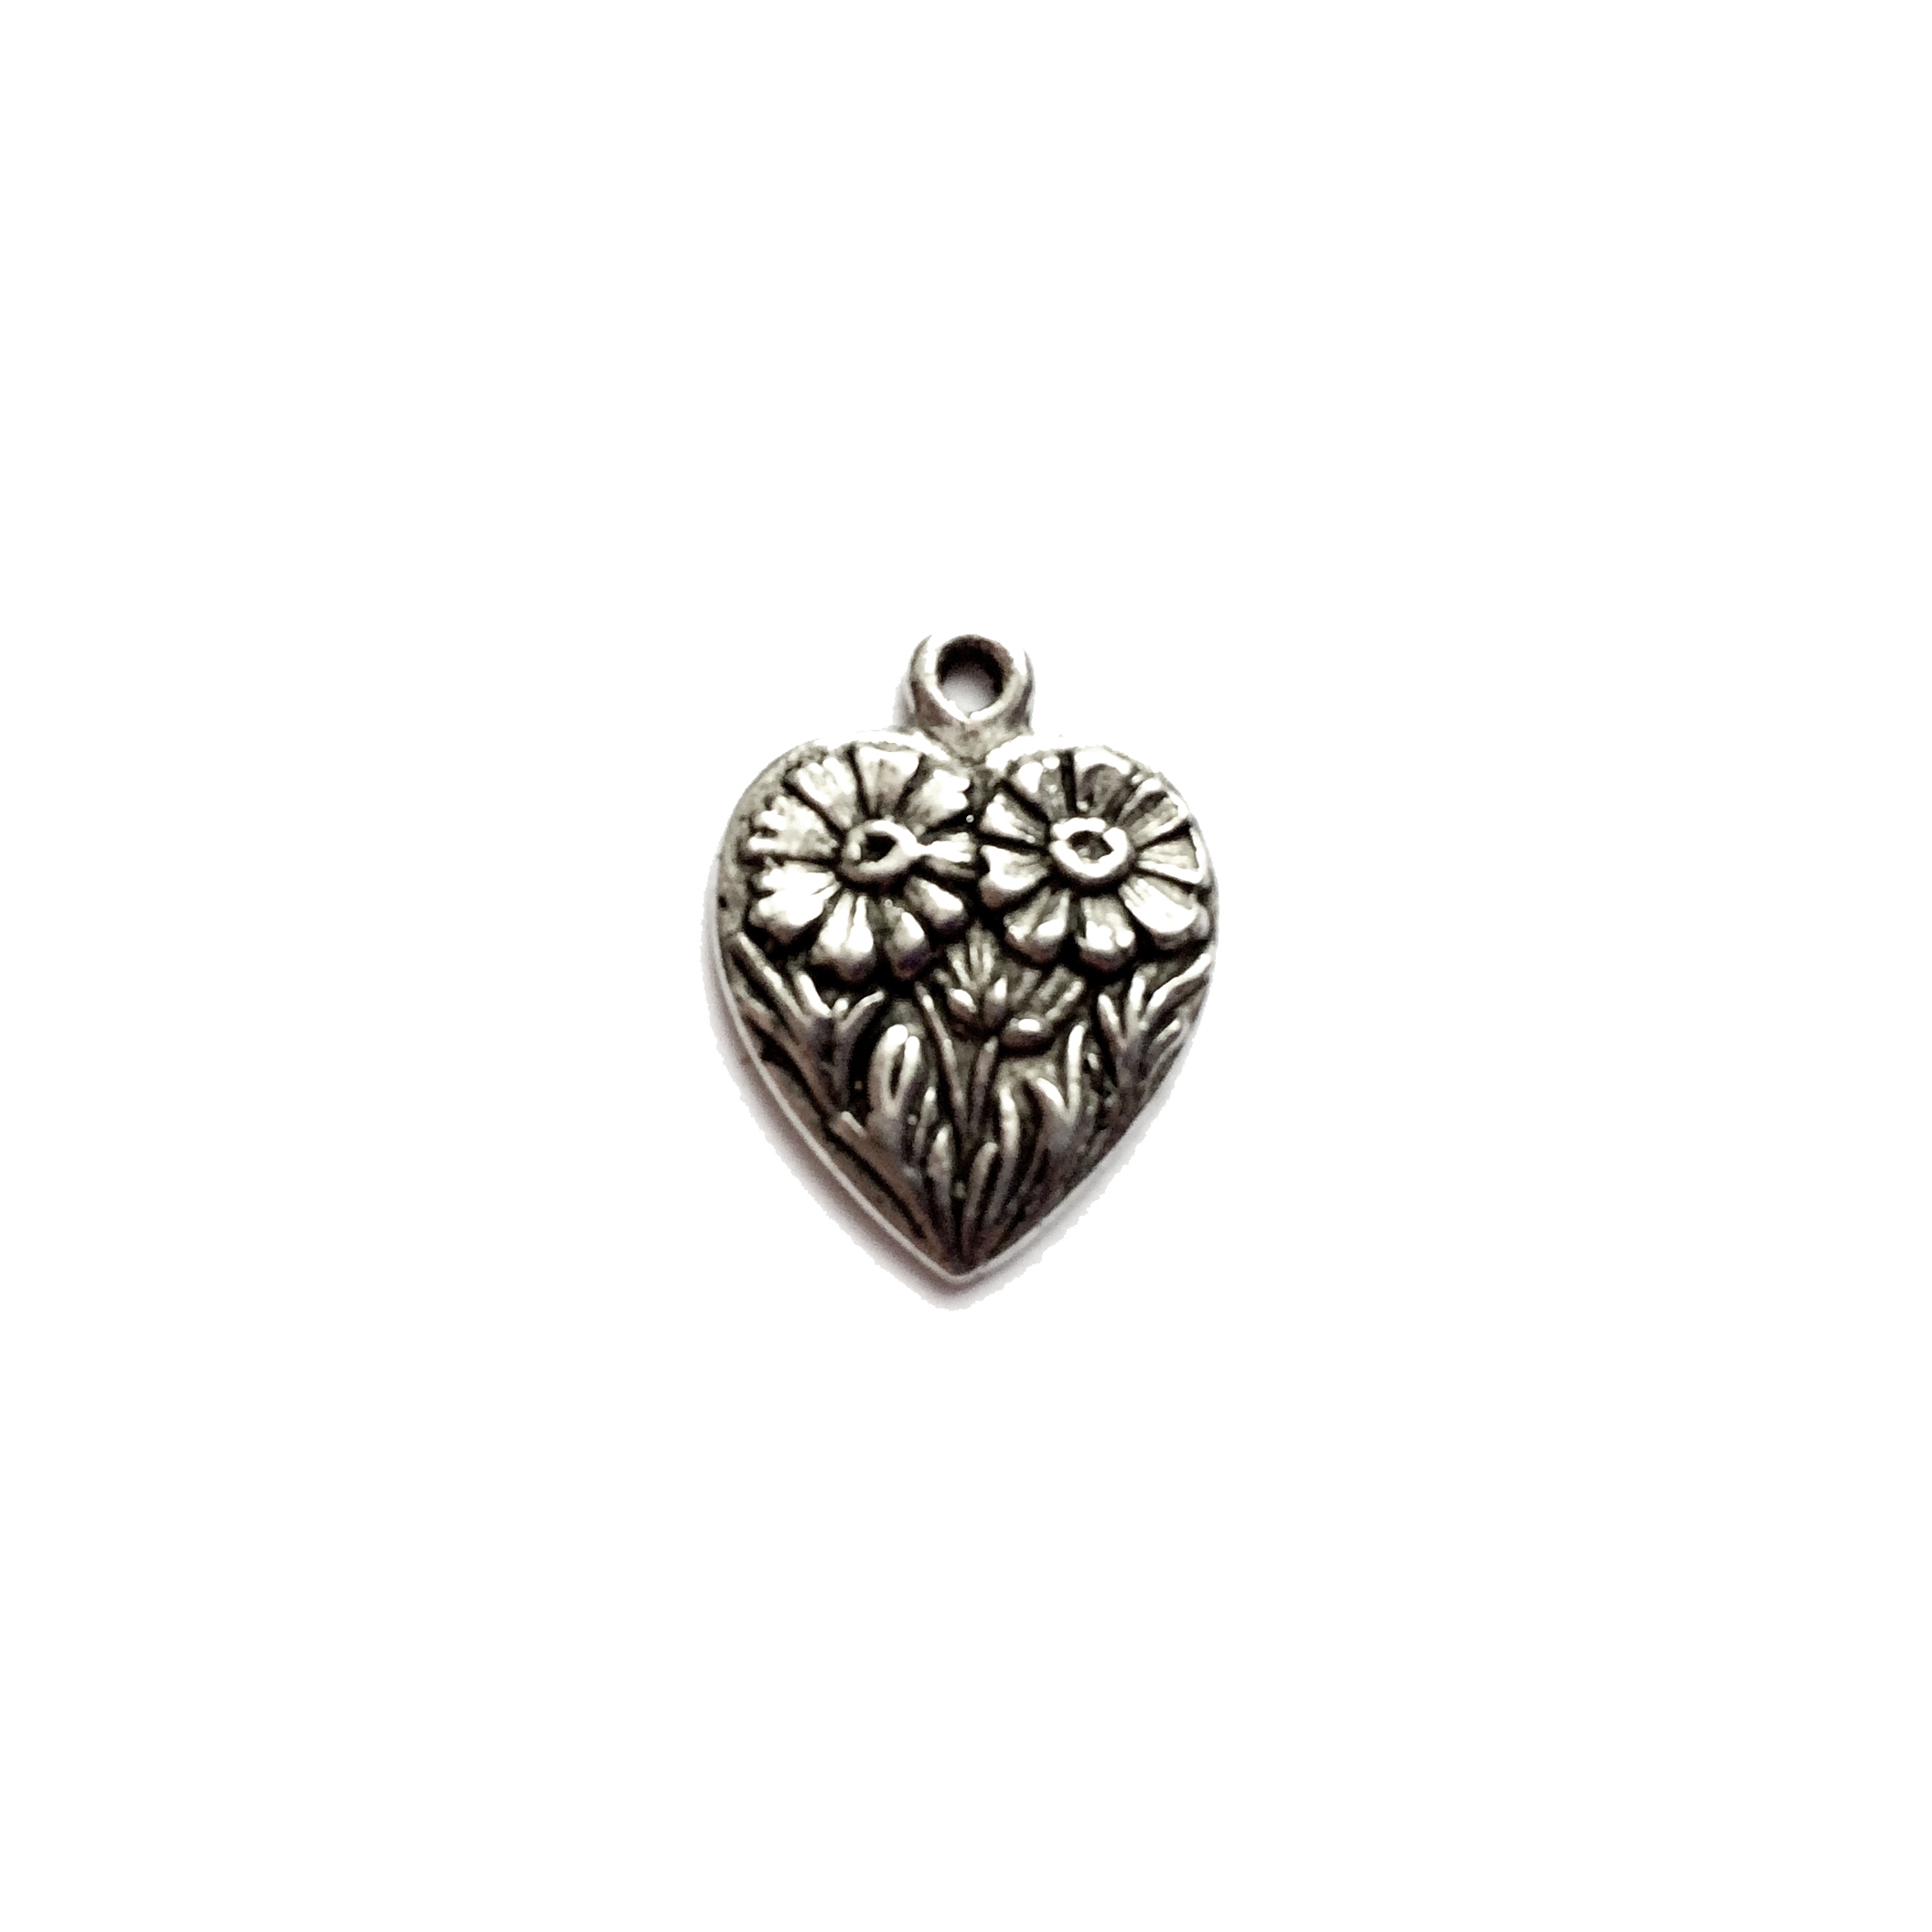 old silver pewter, daisy heart charms, 01014, heart charm, vintage, B'sue by 1928, lead free pewter castings, cast pewter jewelry findings, made in the USA, flower charm, heart charm, 1928 Company, B'sue Boutiques